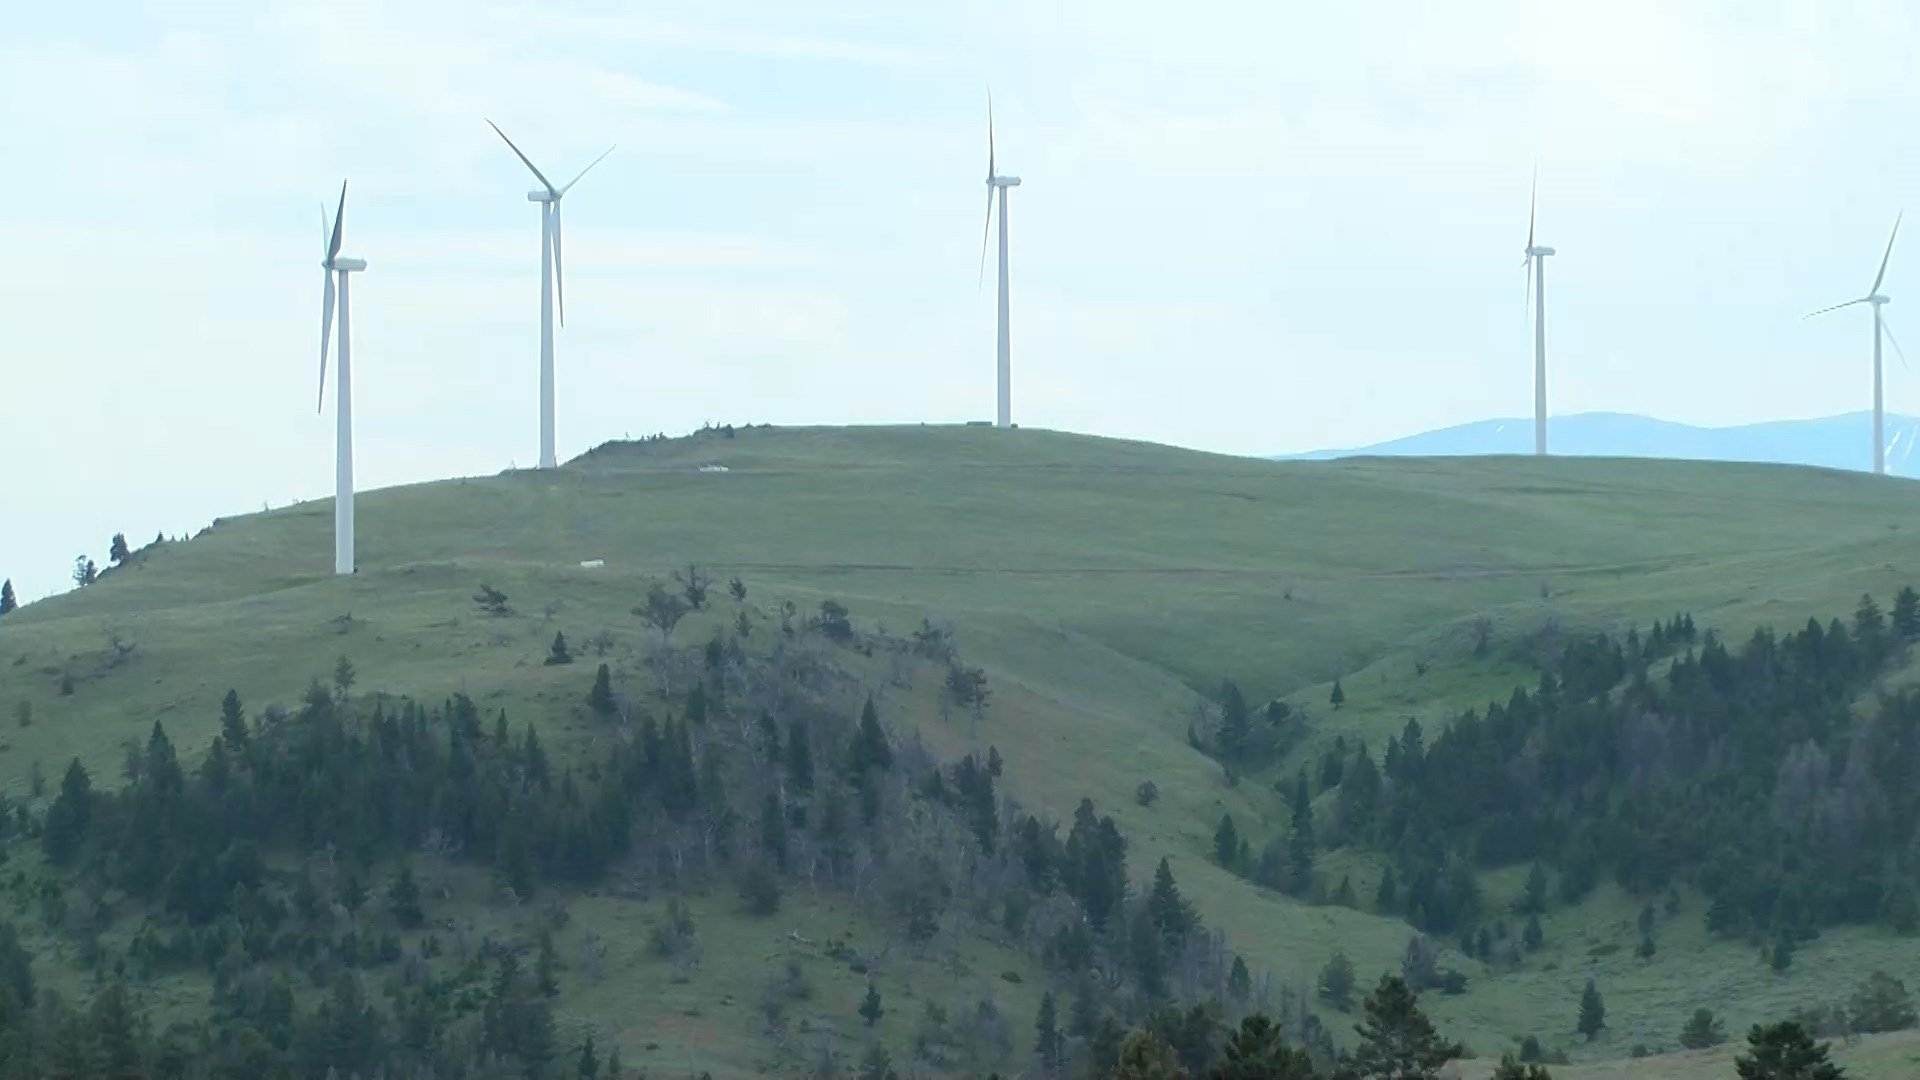 Wind-power turbines in central Montana's Meagher County